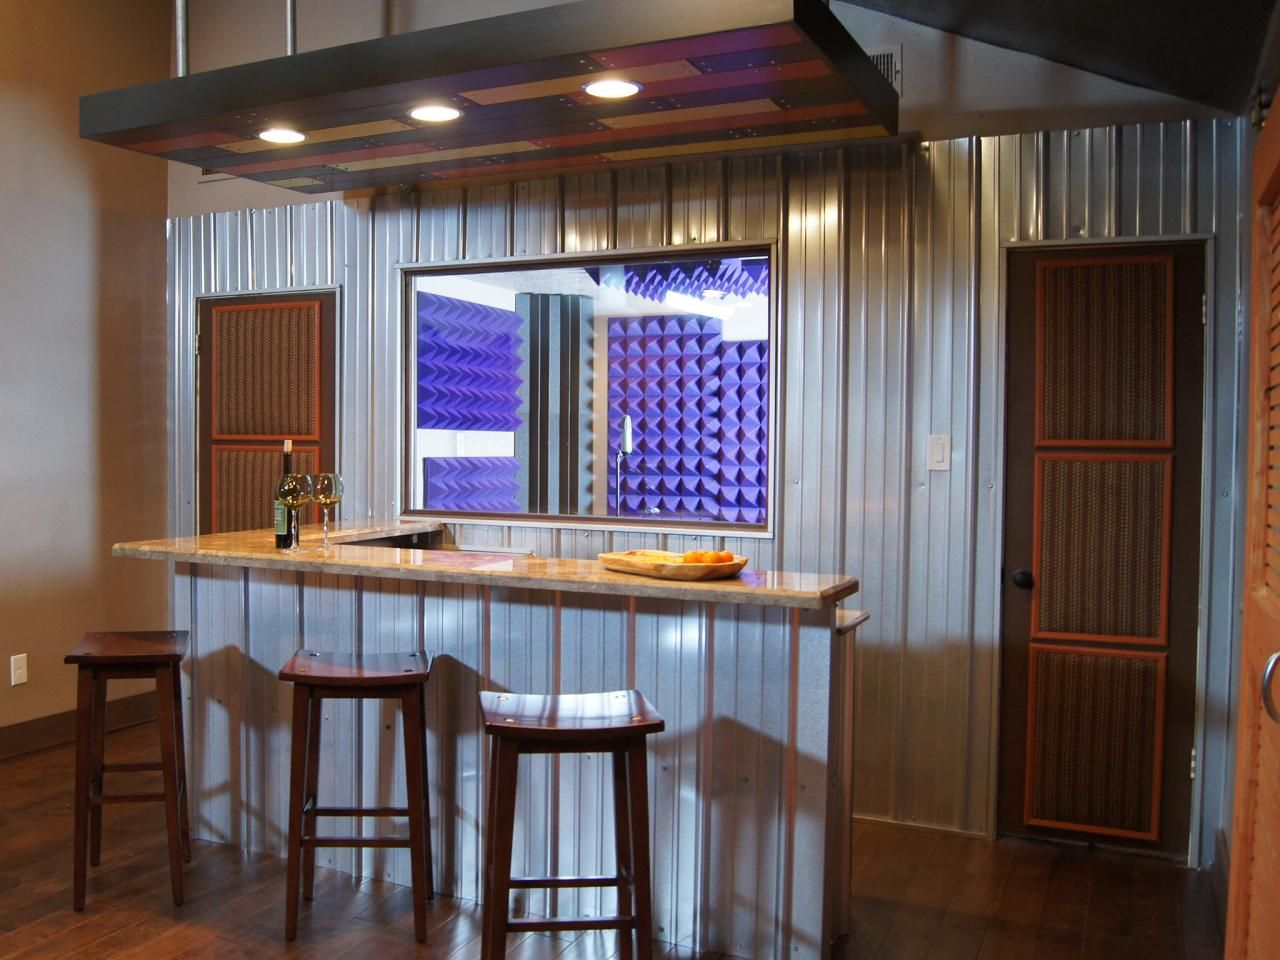 Great Spice Up Your Basement Bar: 17 Ideas For A Beautiful Bar Space